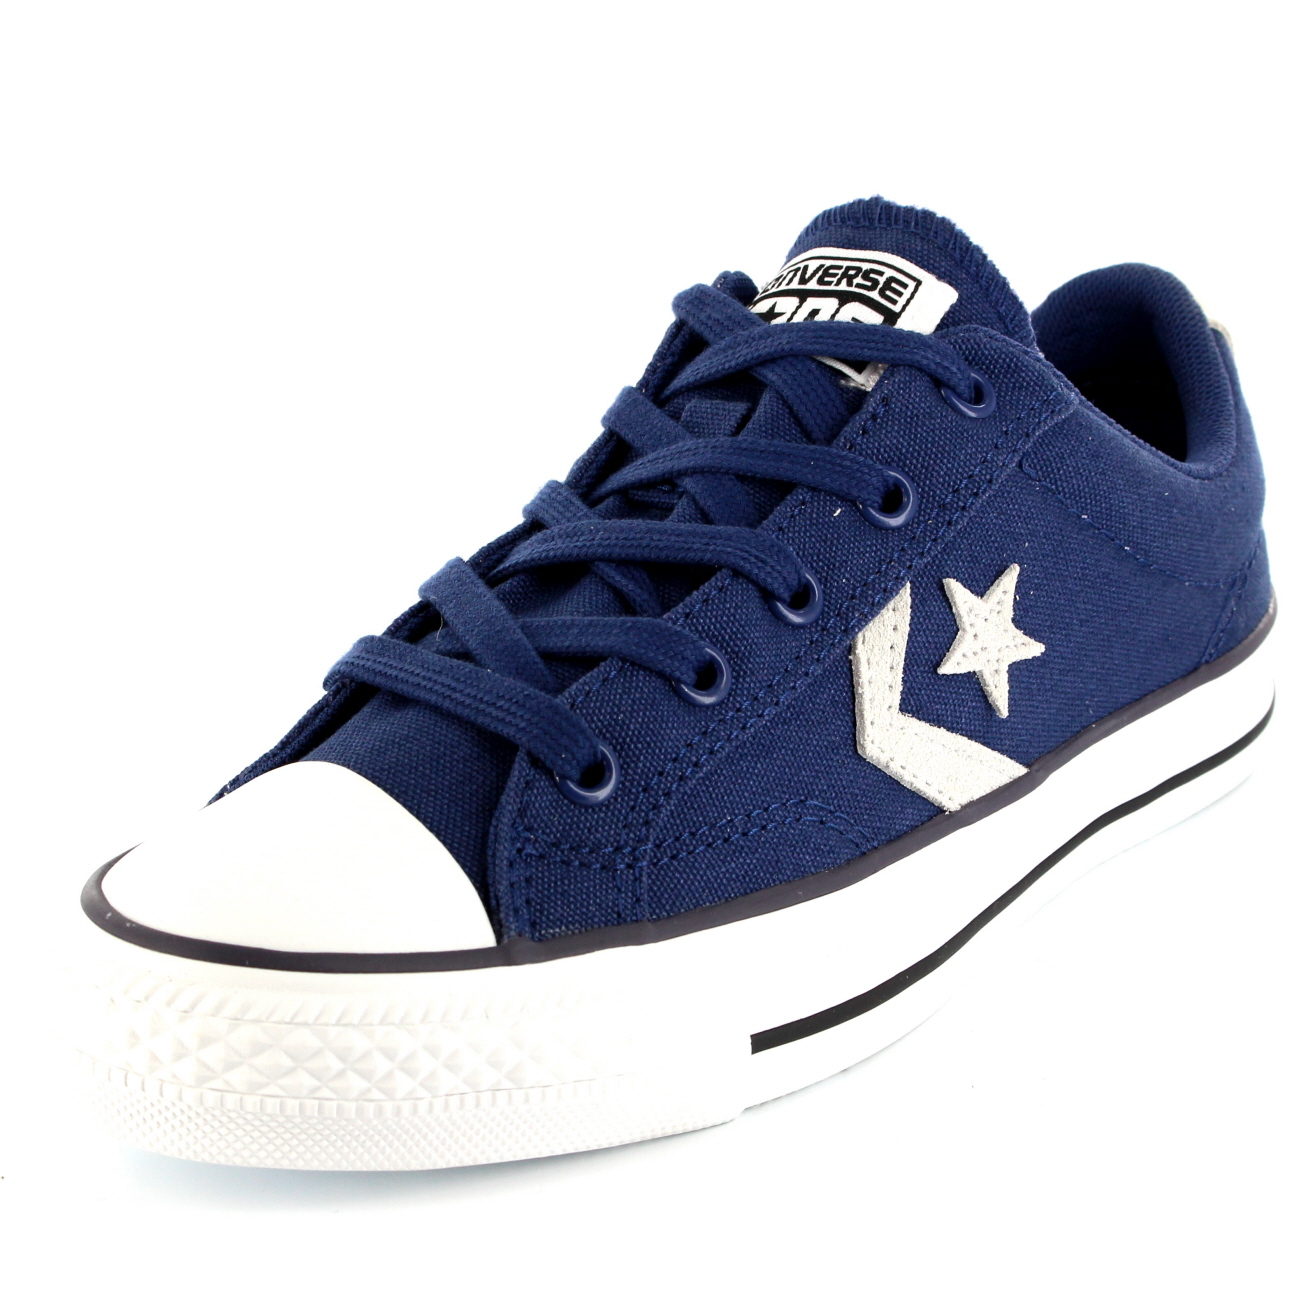 womens converse star player ox all star chuck taylor lace up sneakers us 5 10 ebay. Black Bedroom Furniture Sets. Home Design Ideas